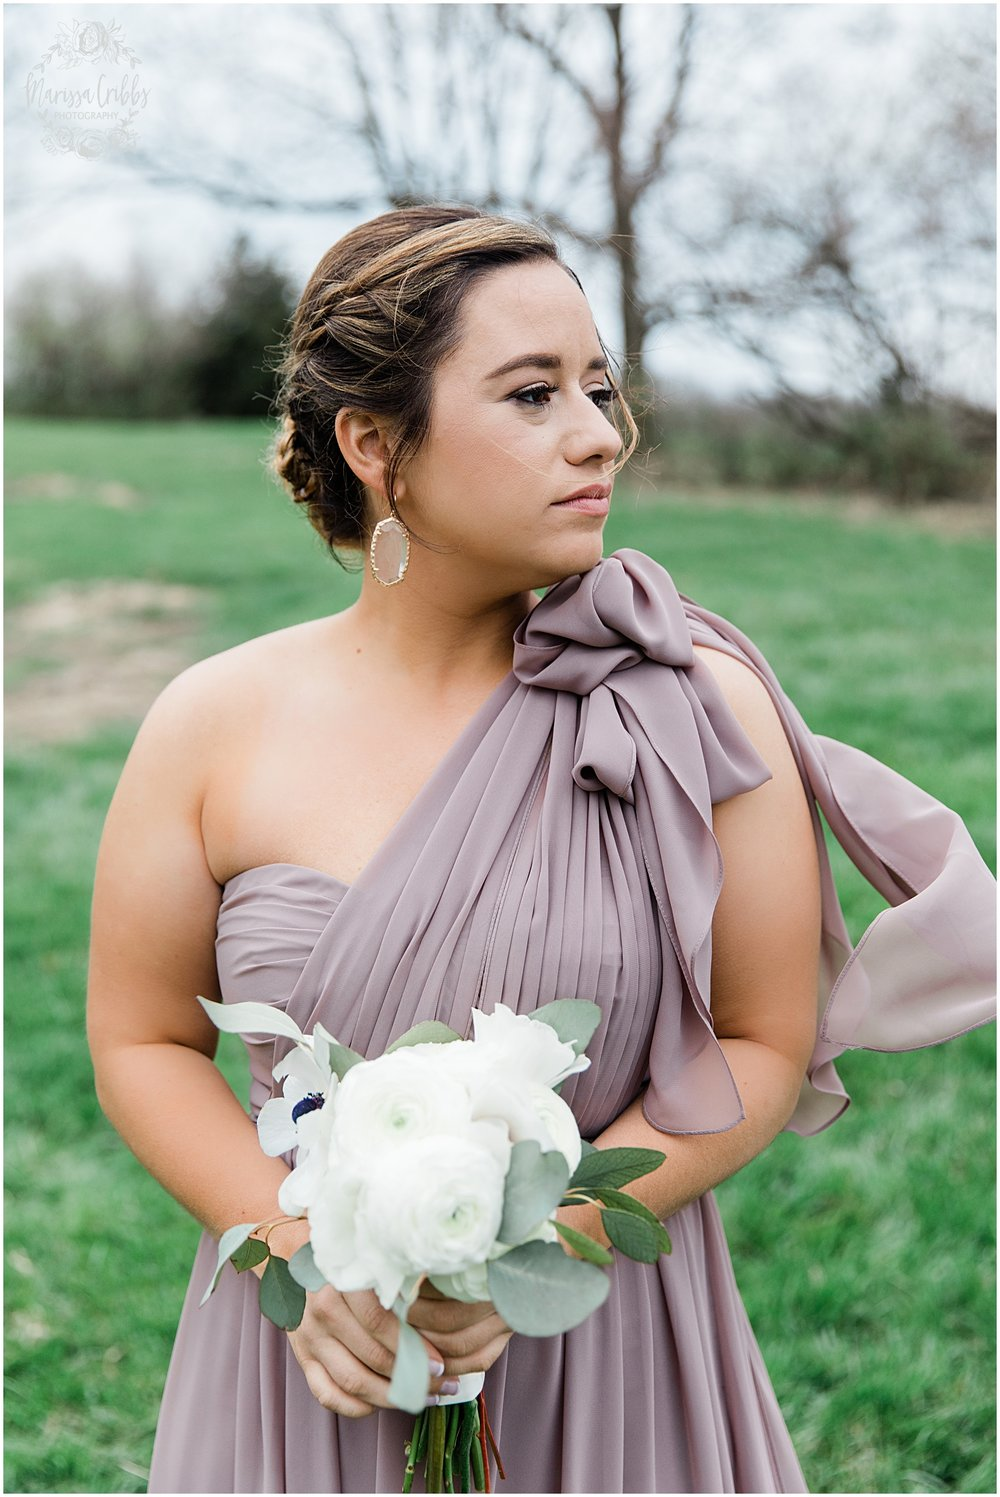 TILSON WEDDING | THE LEGACY AT GREEN HILLS | SIMPLE ELEGANCE | MARISSA CRIBBS PHOTOGRAPHY_4726.jpg